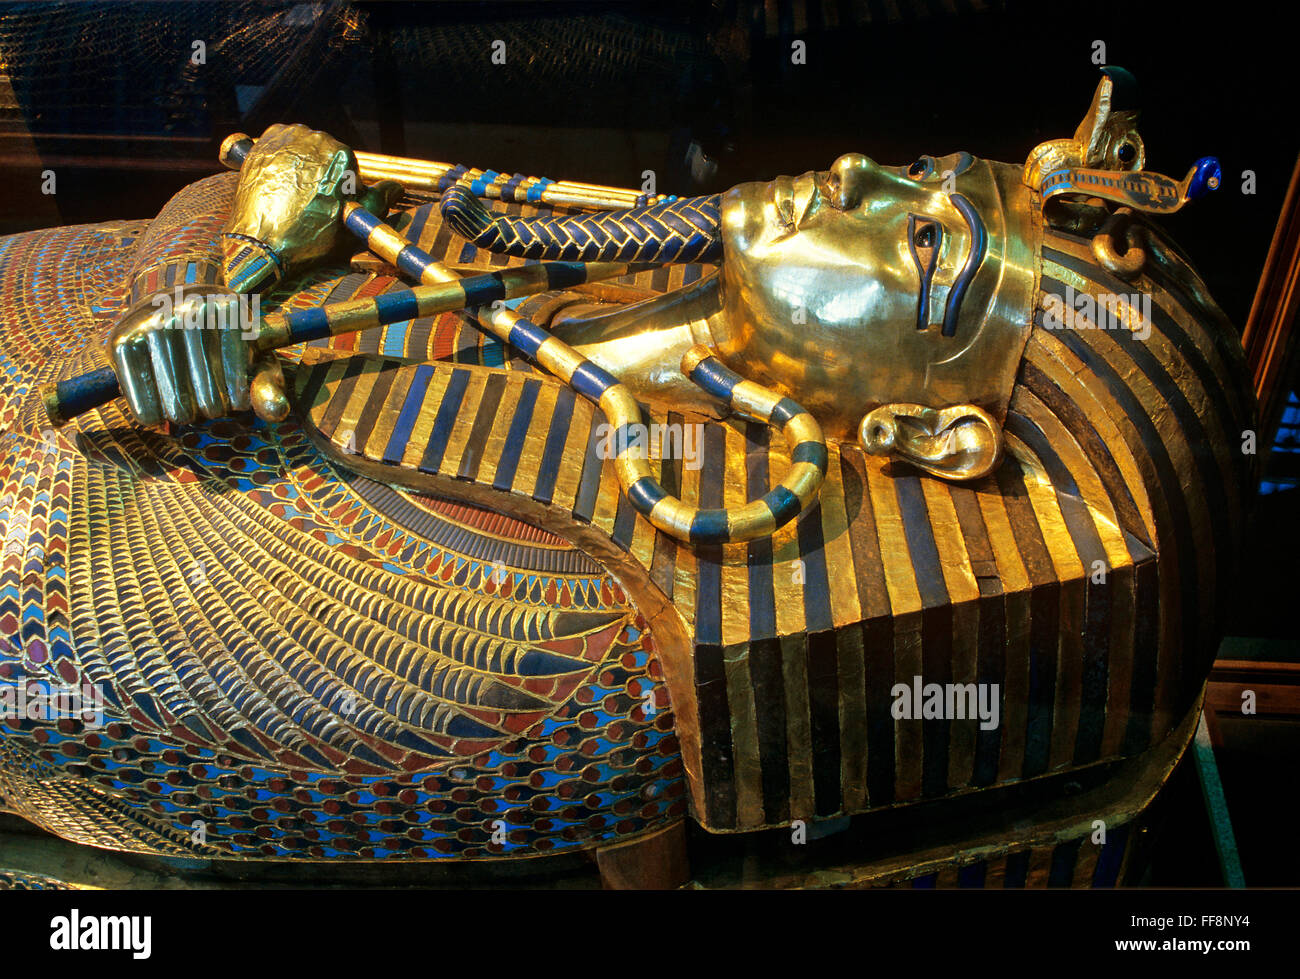 Sarcophagus of Tutankhamun, 14th century BC, Museum of Egyptian Antiquities, Cairo, Egypt, Africa - Stock Image